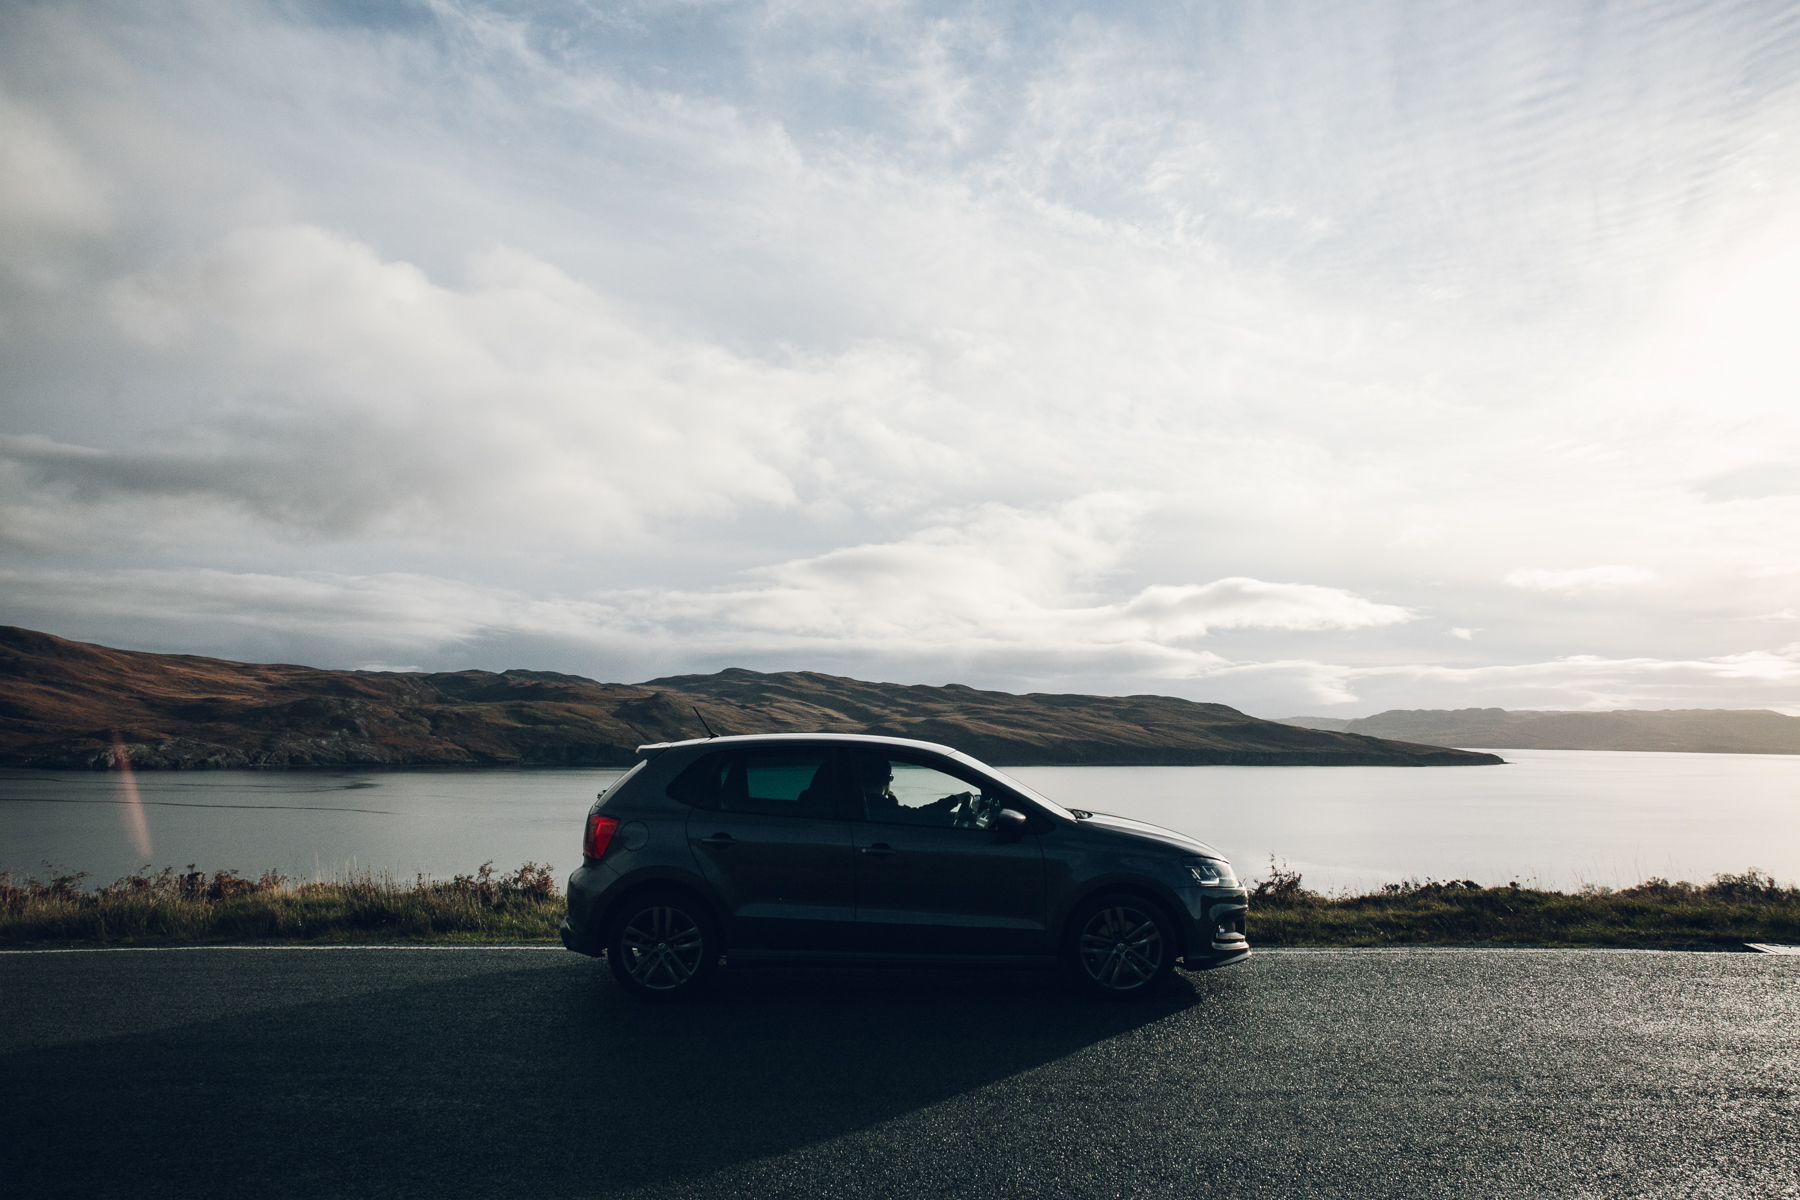 Road trip in our Volkswagen Polo.